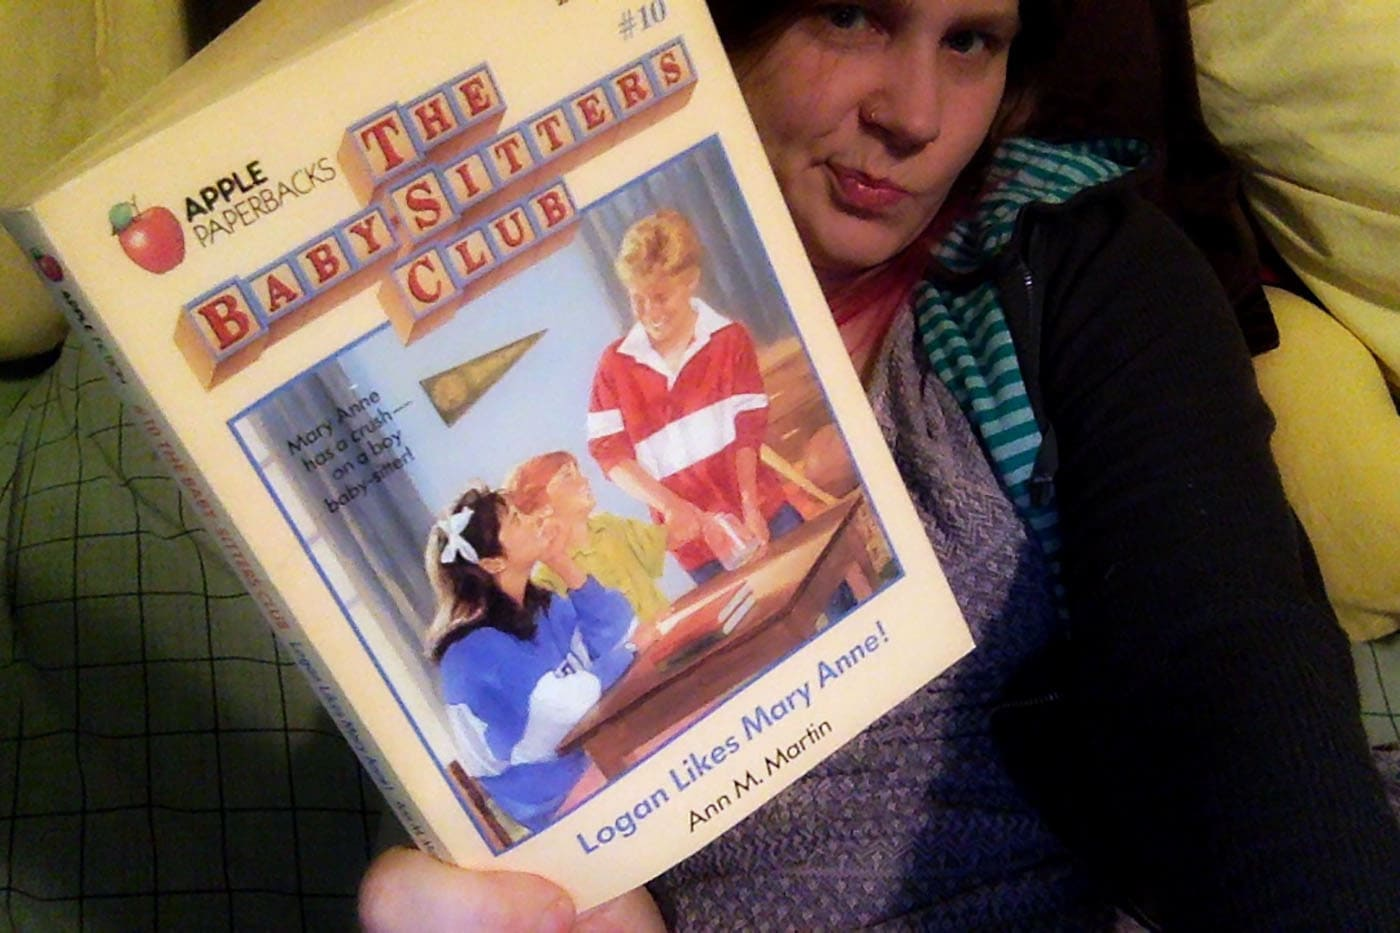 Baby-Sitters Club 10 - Logan Likes Mary Anne!